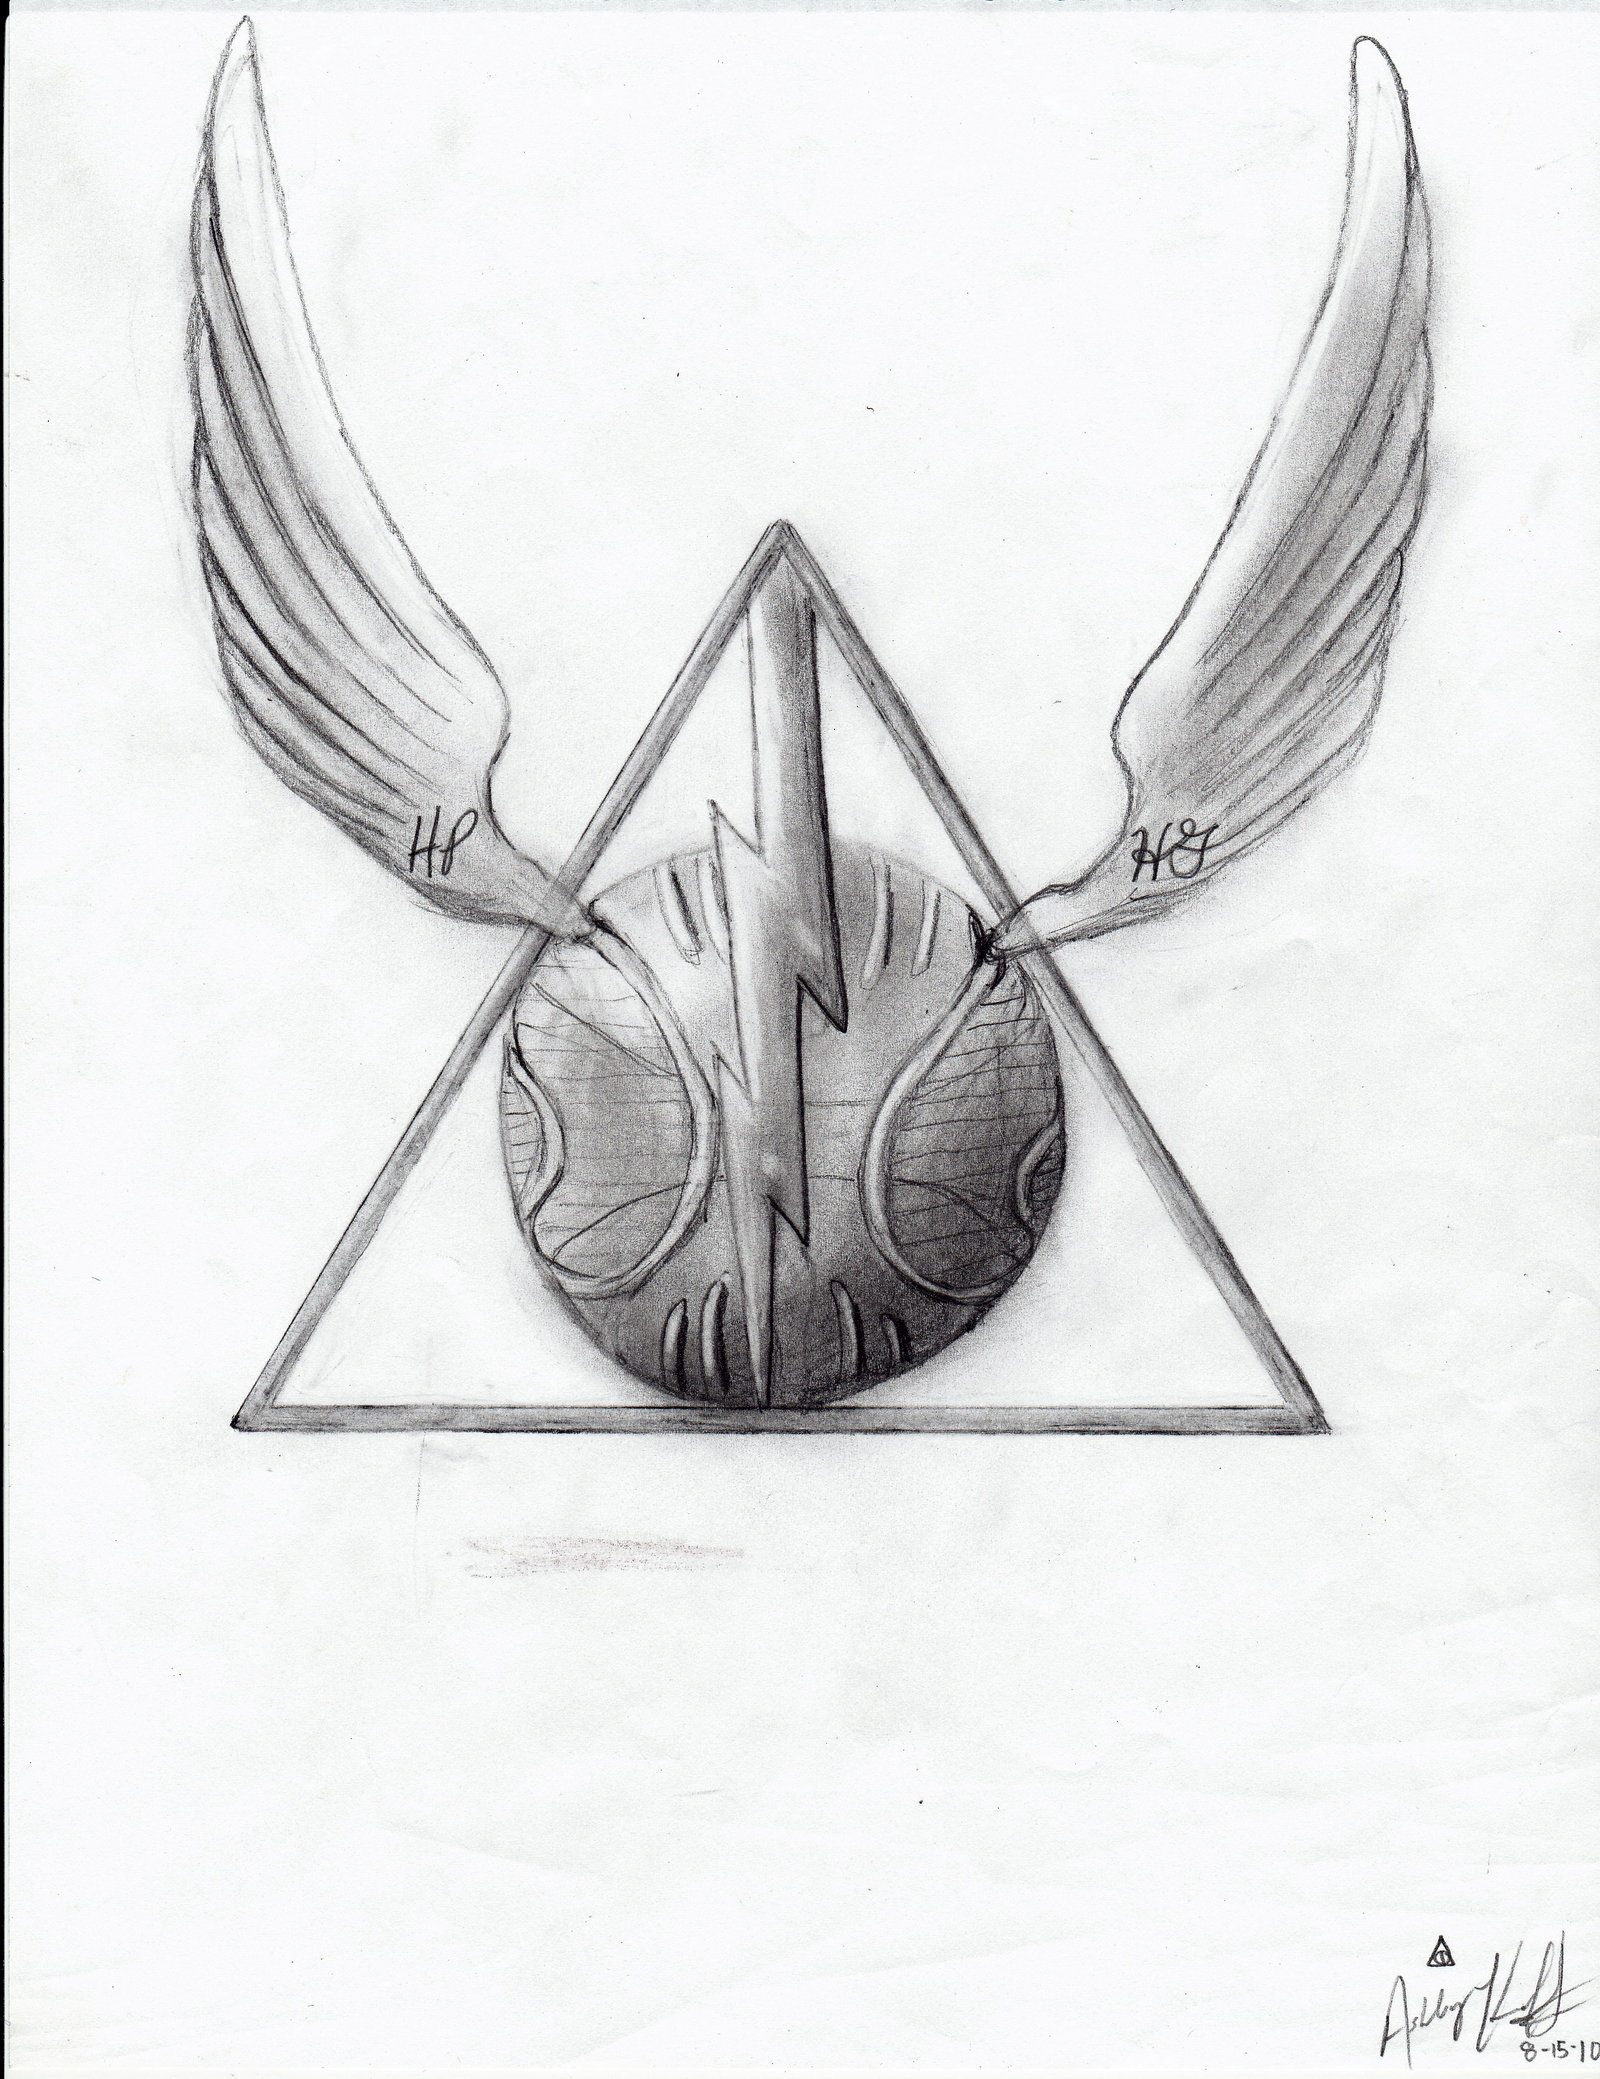 It's just a picture of Simplicity Harry Potter Snitch Drawing